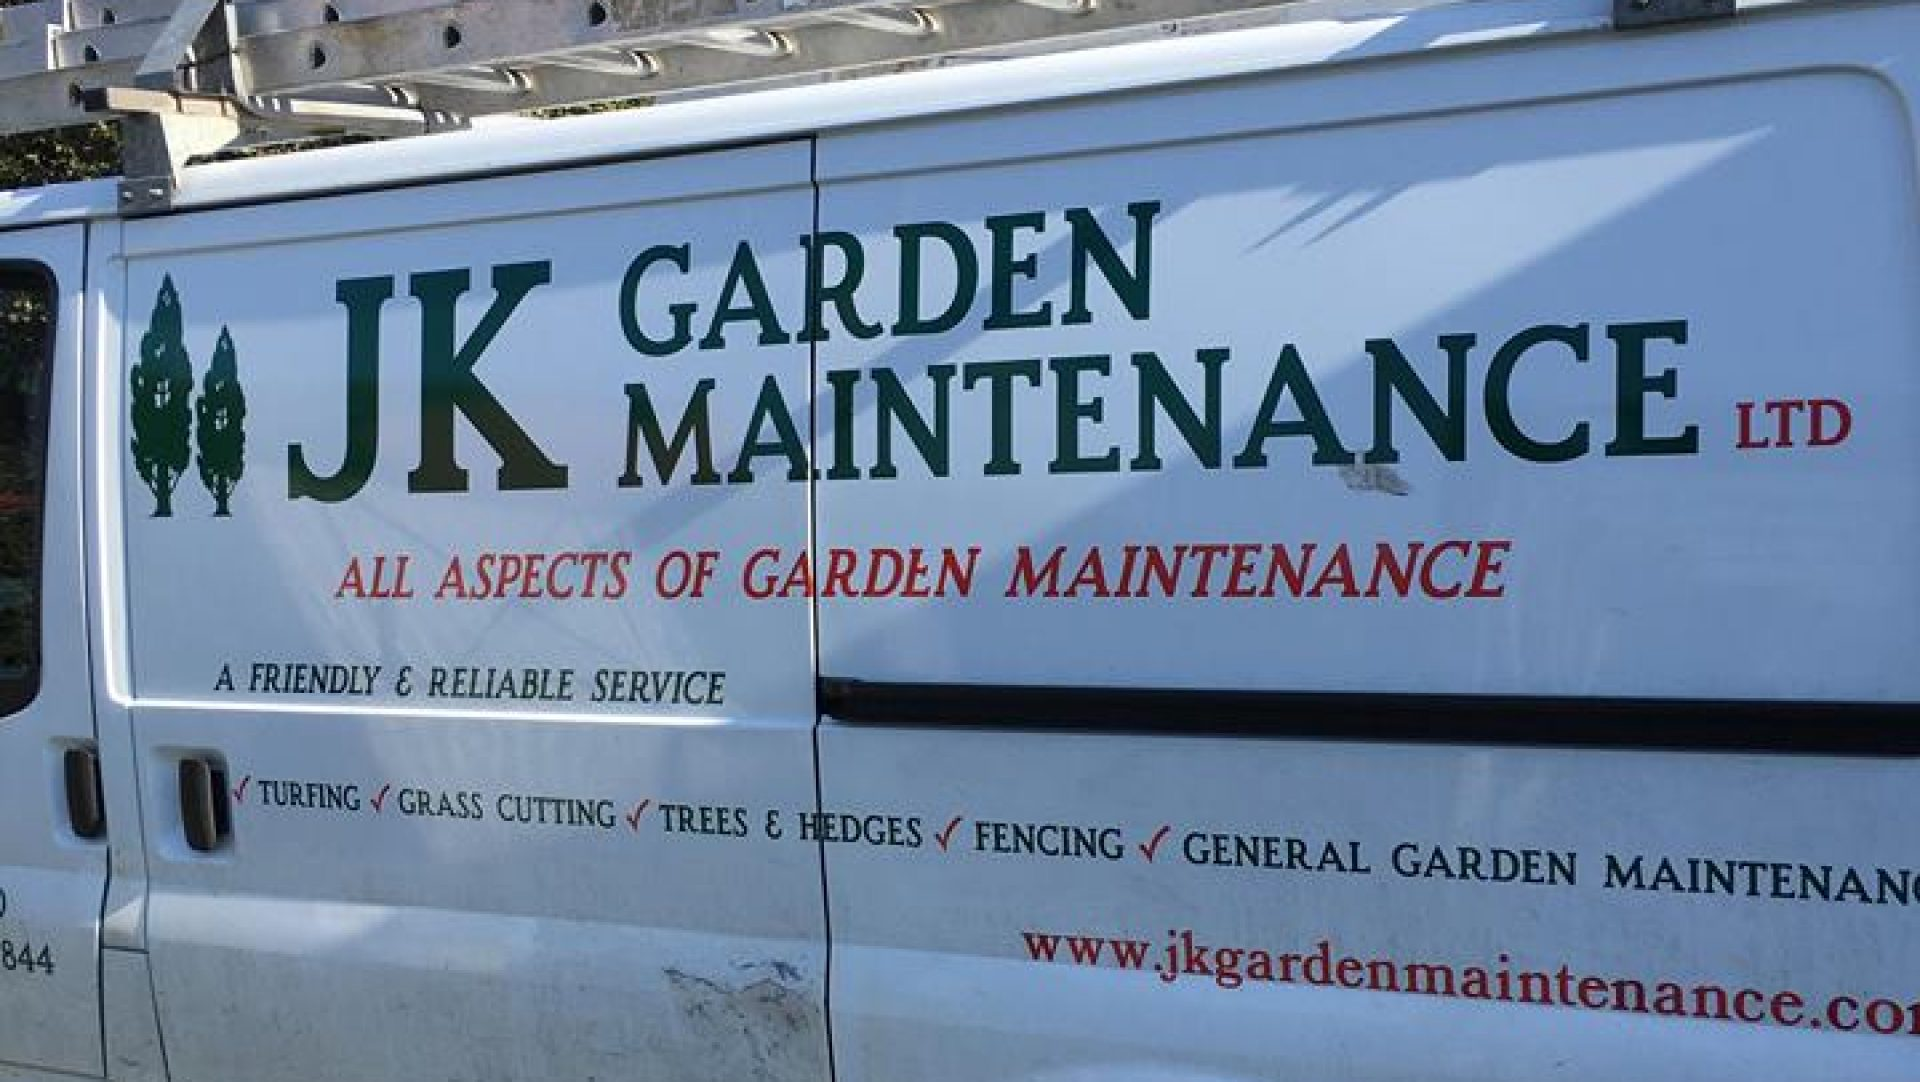 JK Garden Maintenance Ltd